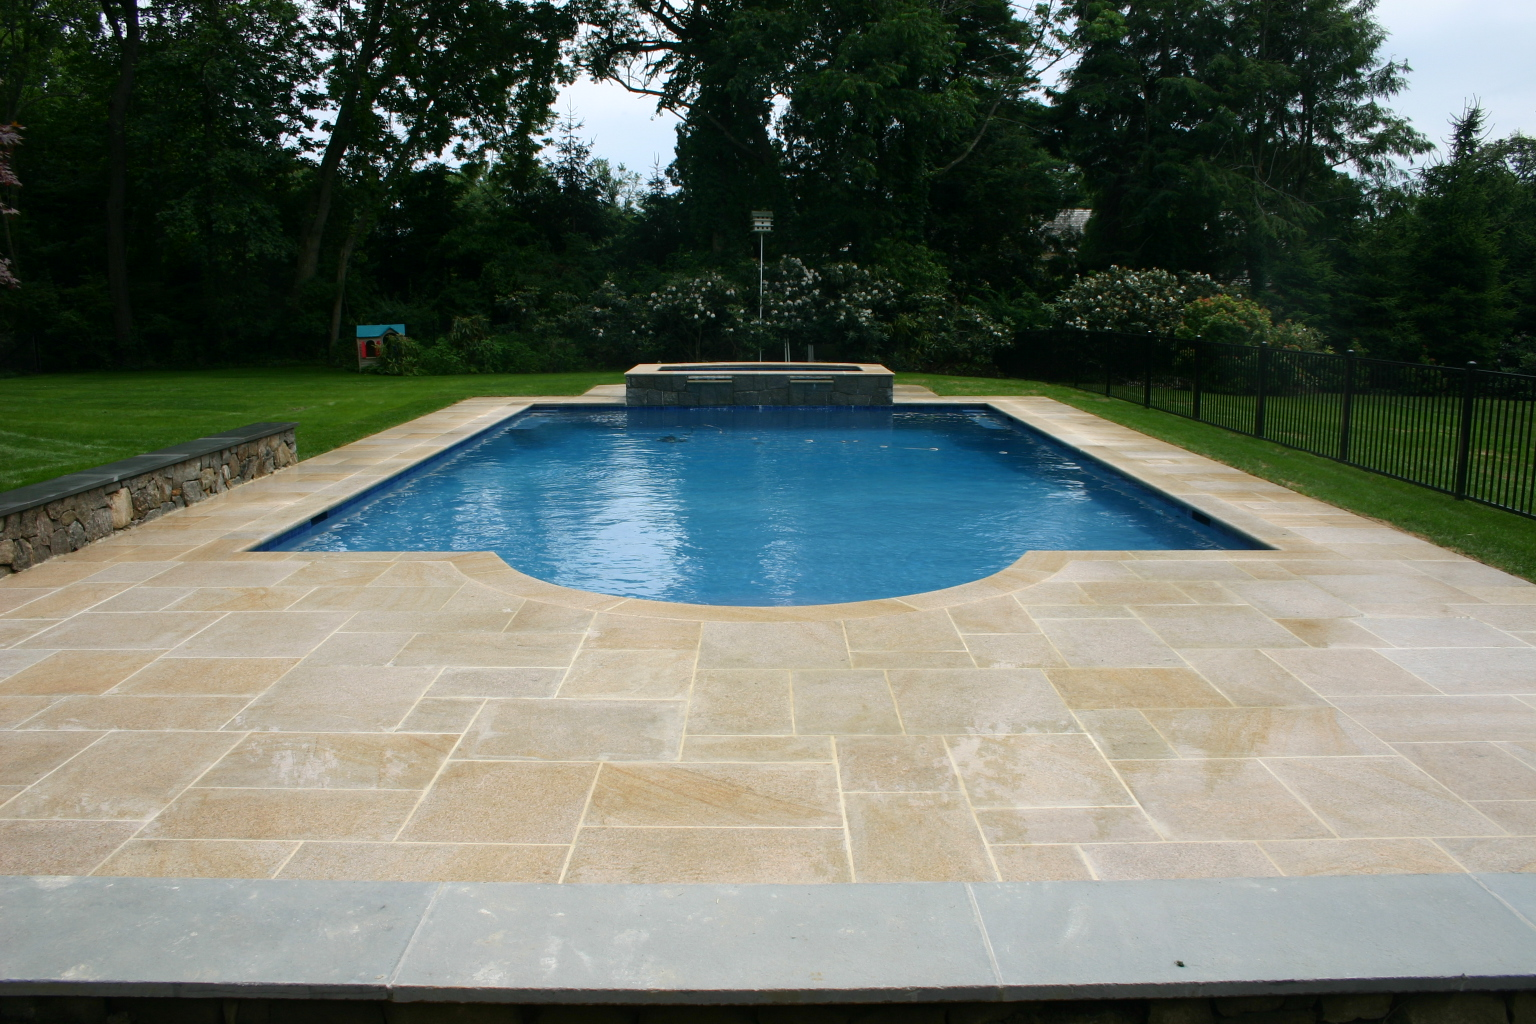 Construction swimming pools photos for Pool installation cost